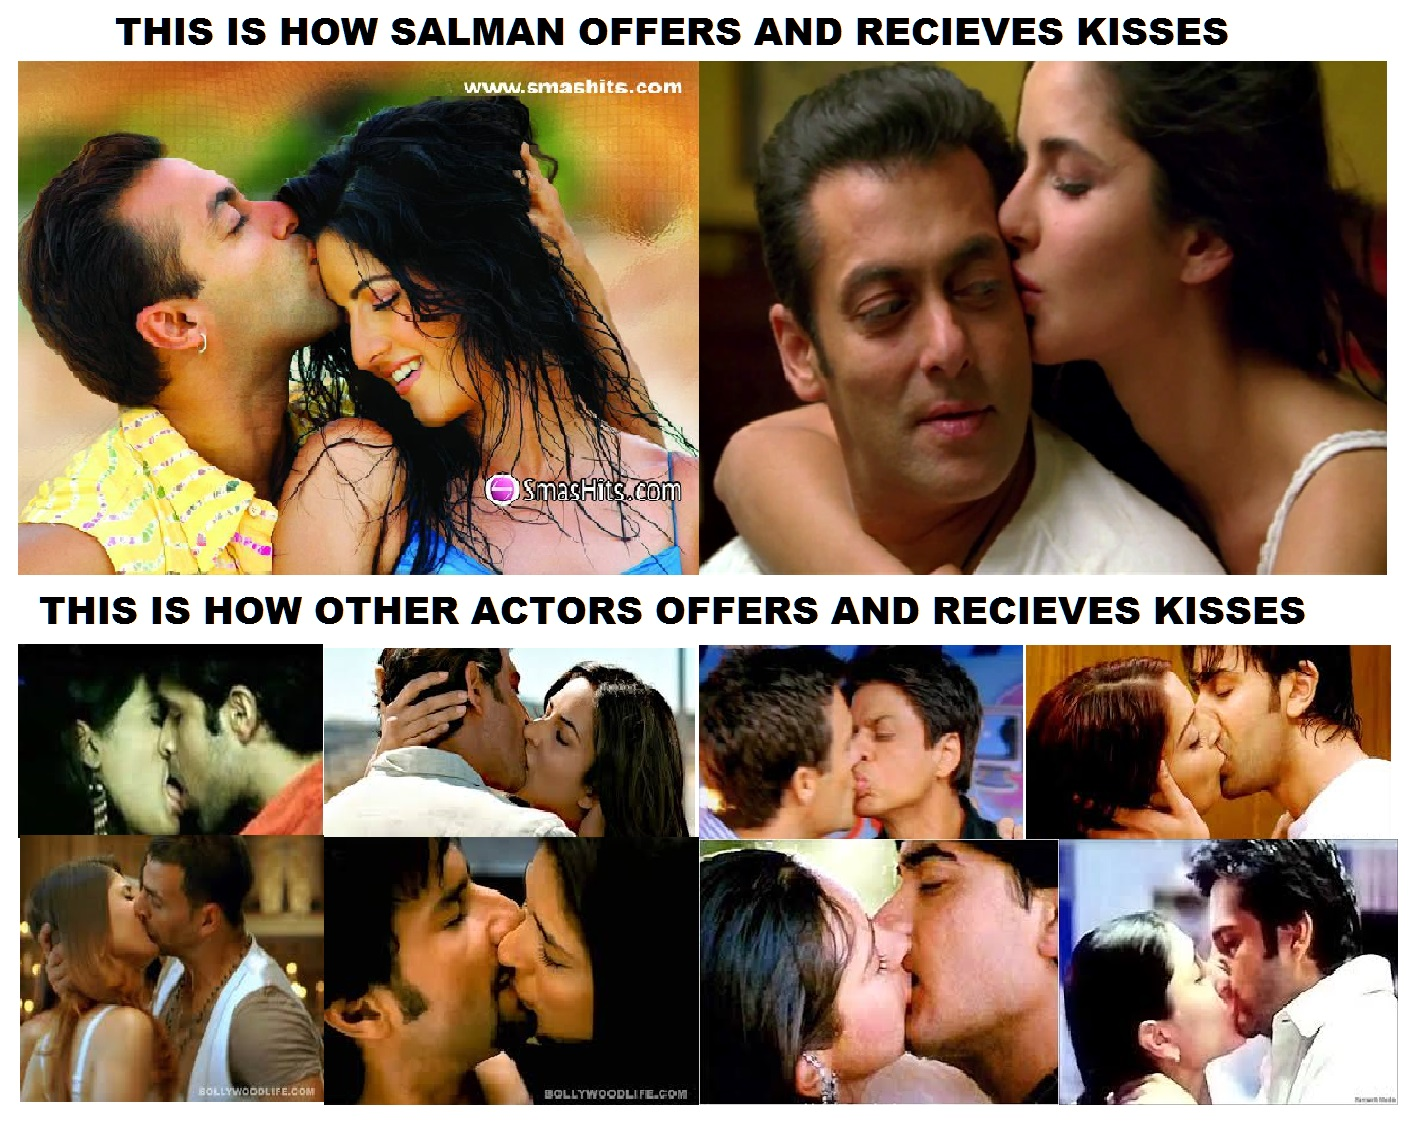 HOW DOES SALMAN KISS AND HOW OTHER ACTORS KISS